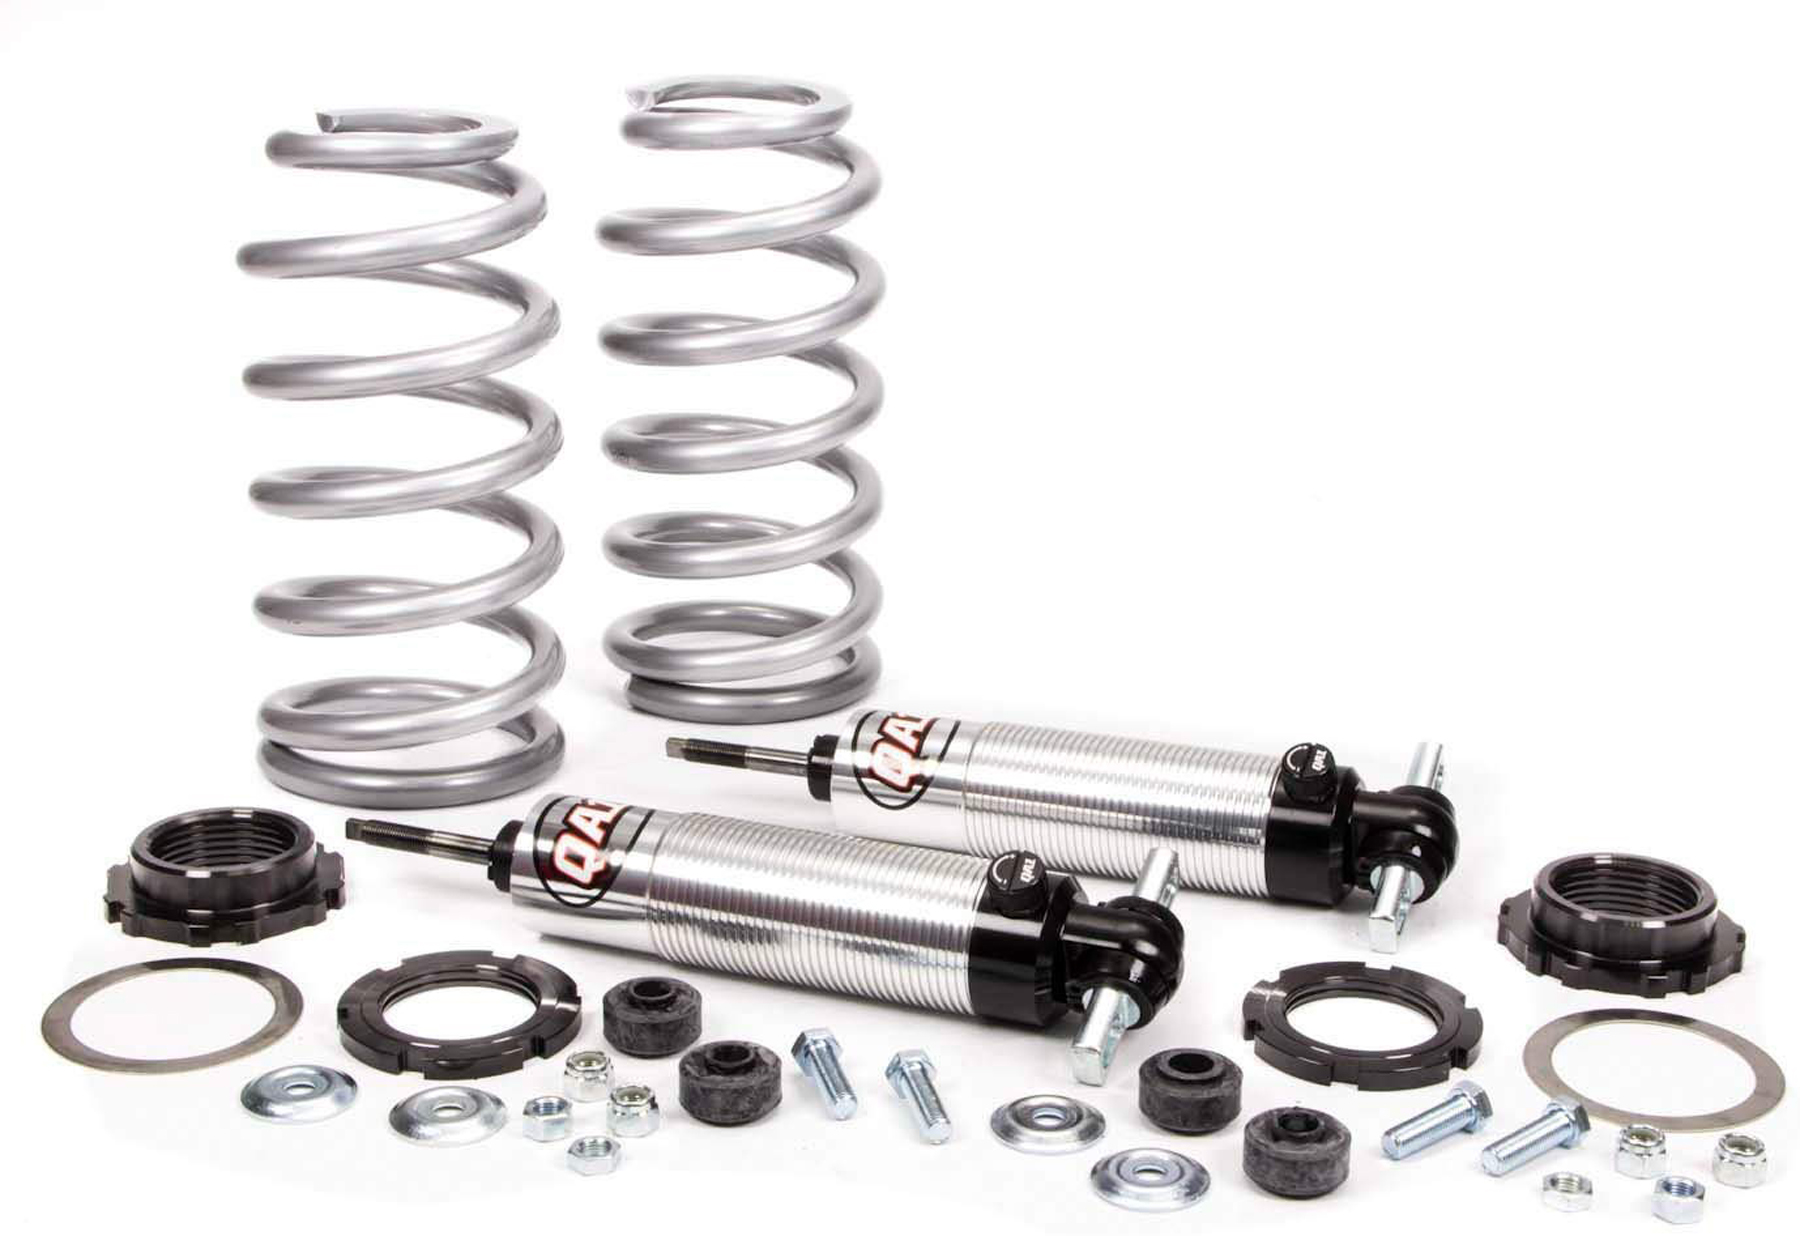 Installing Qa1 Pro Coil Shock System Is A Simple At Home